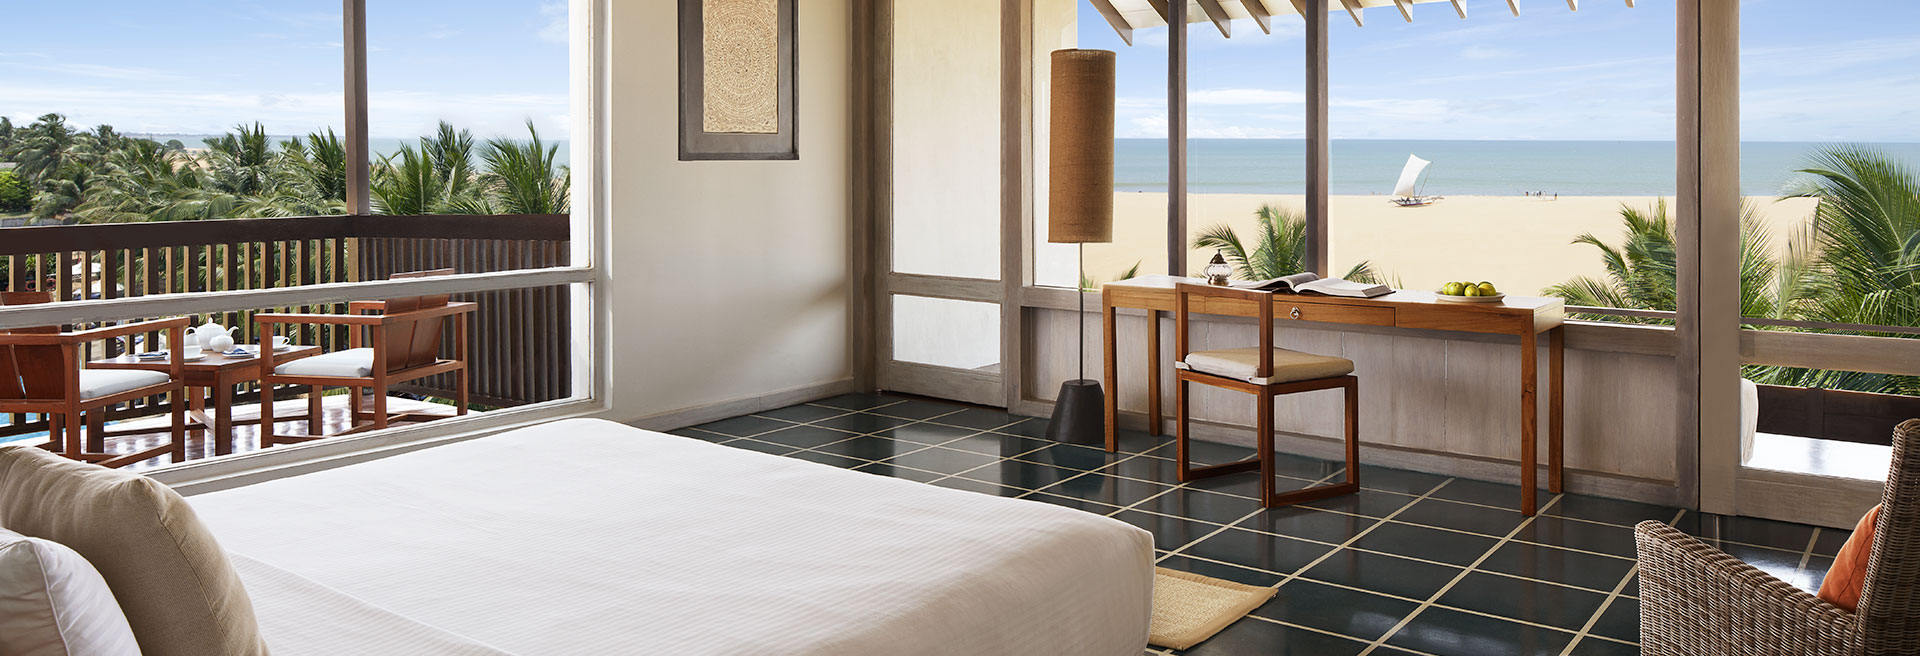 A luxury suite with the bed facing the Negombo beach and ocean